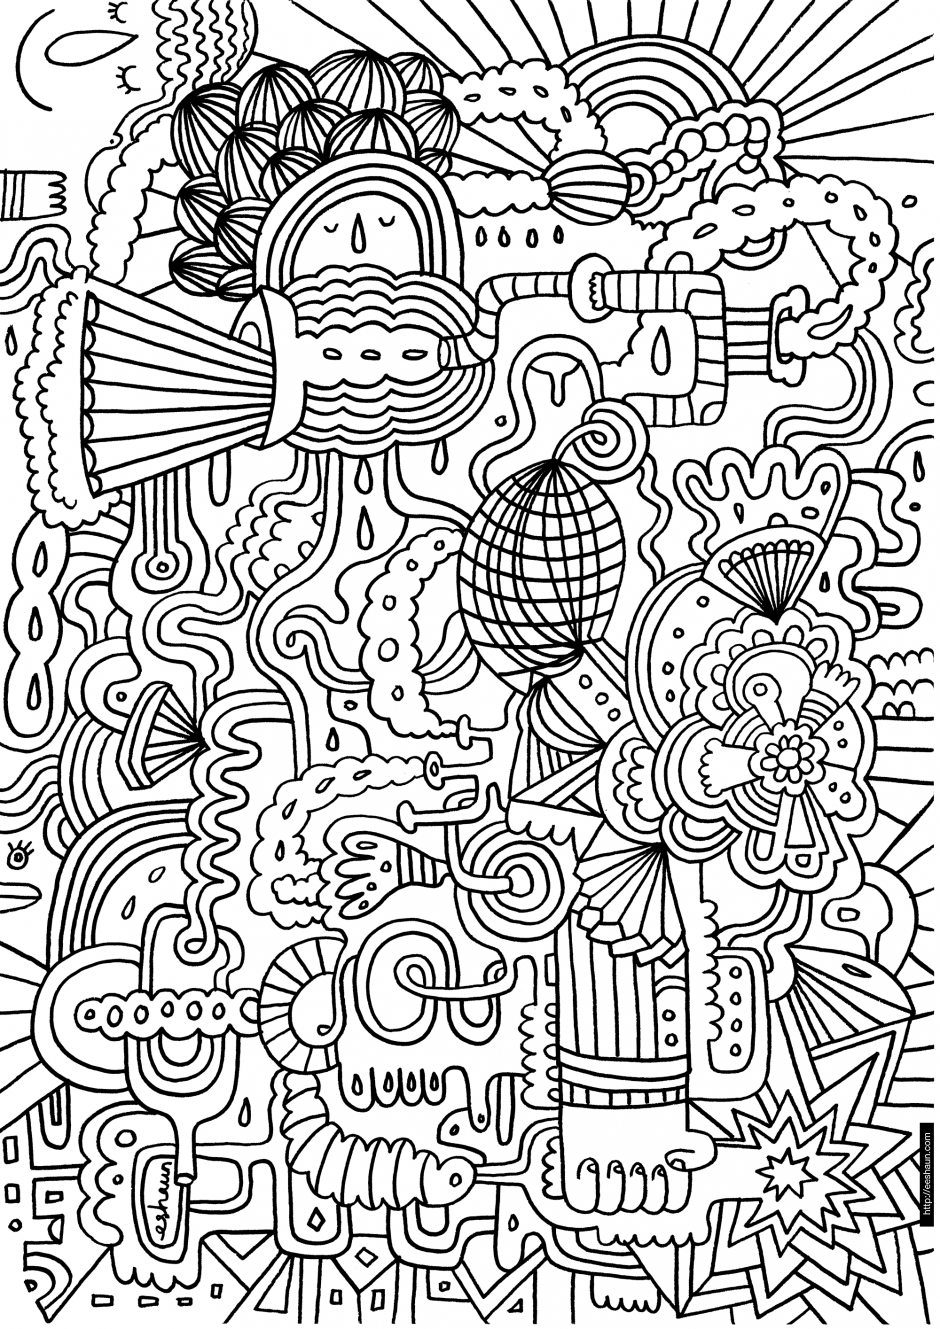 challenging coloring sheets printable difficult coloring pages coloring home challenging sheets coloring